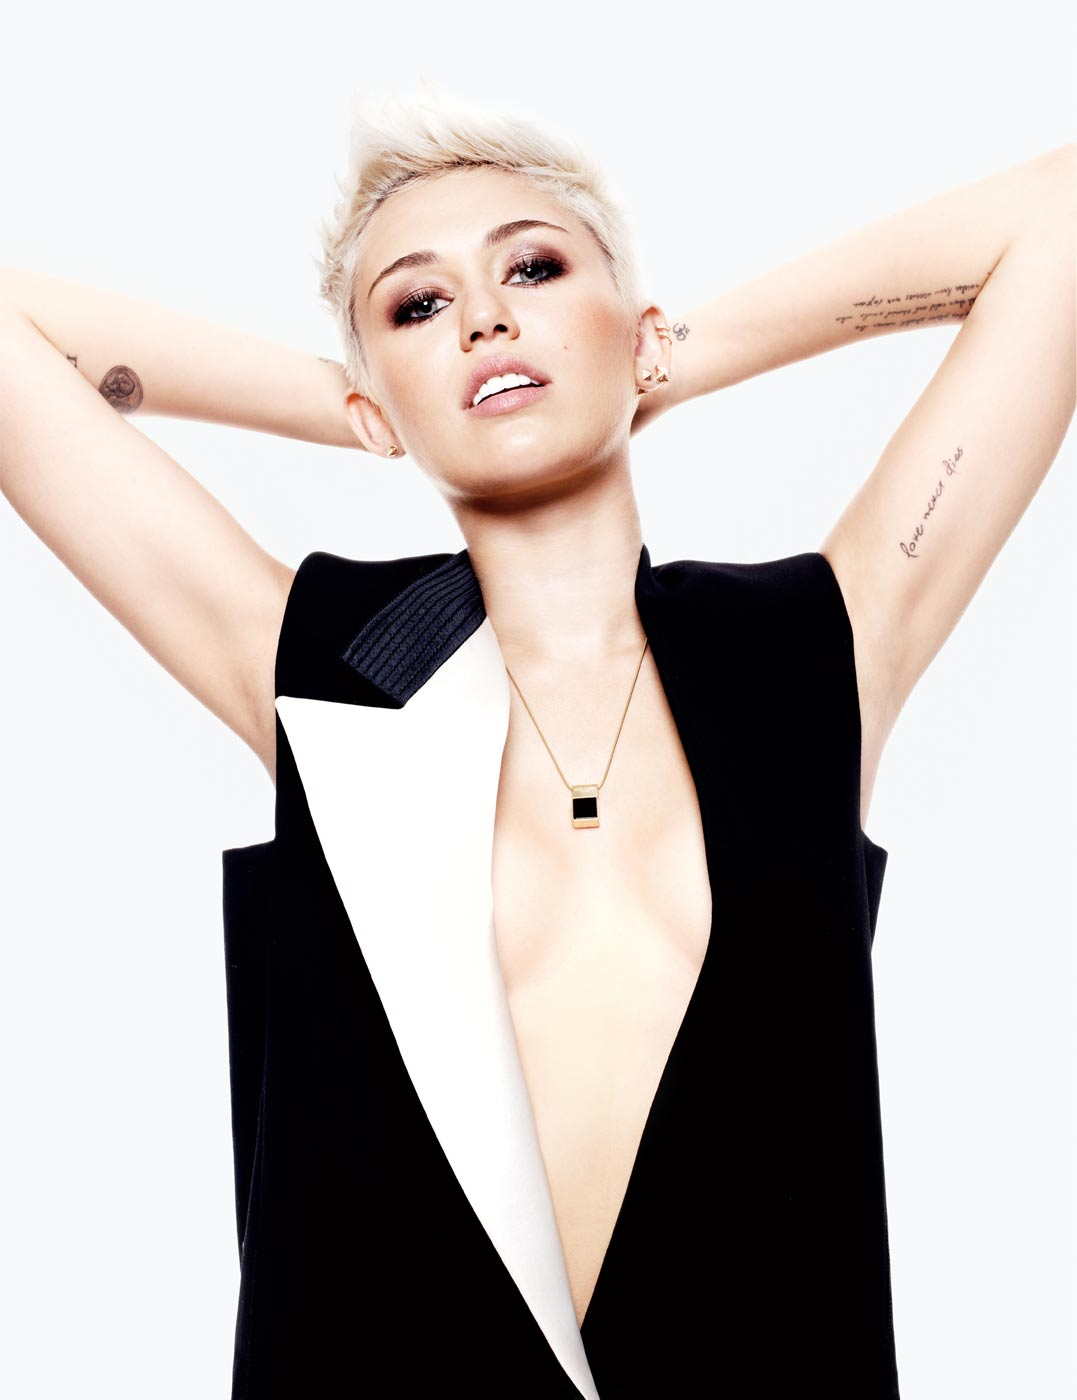 TREND: July 2013: Cover Story: Miley Cyrus